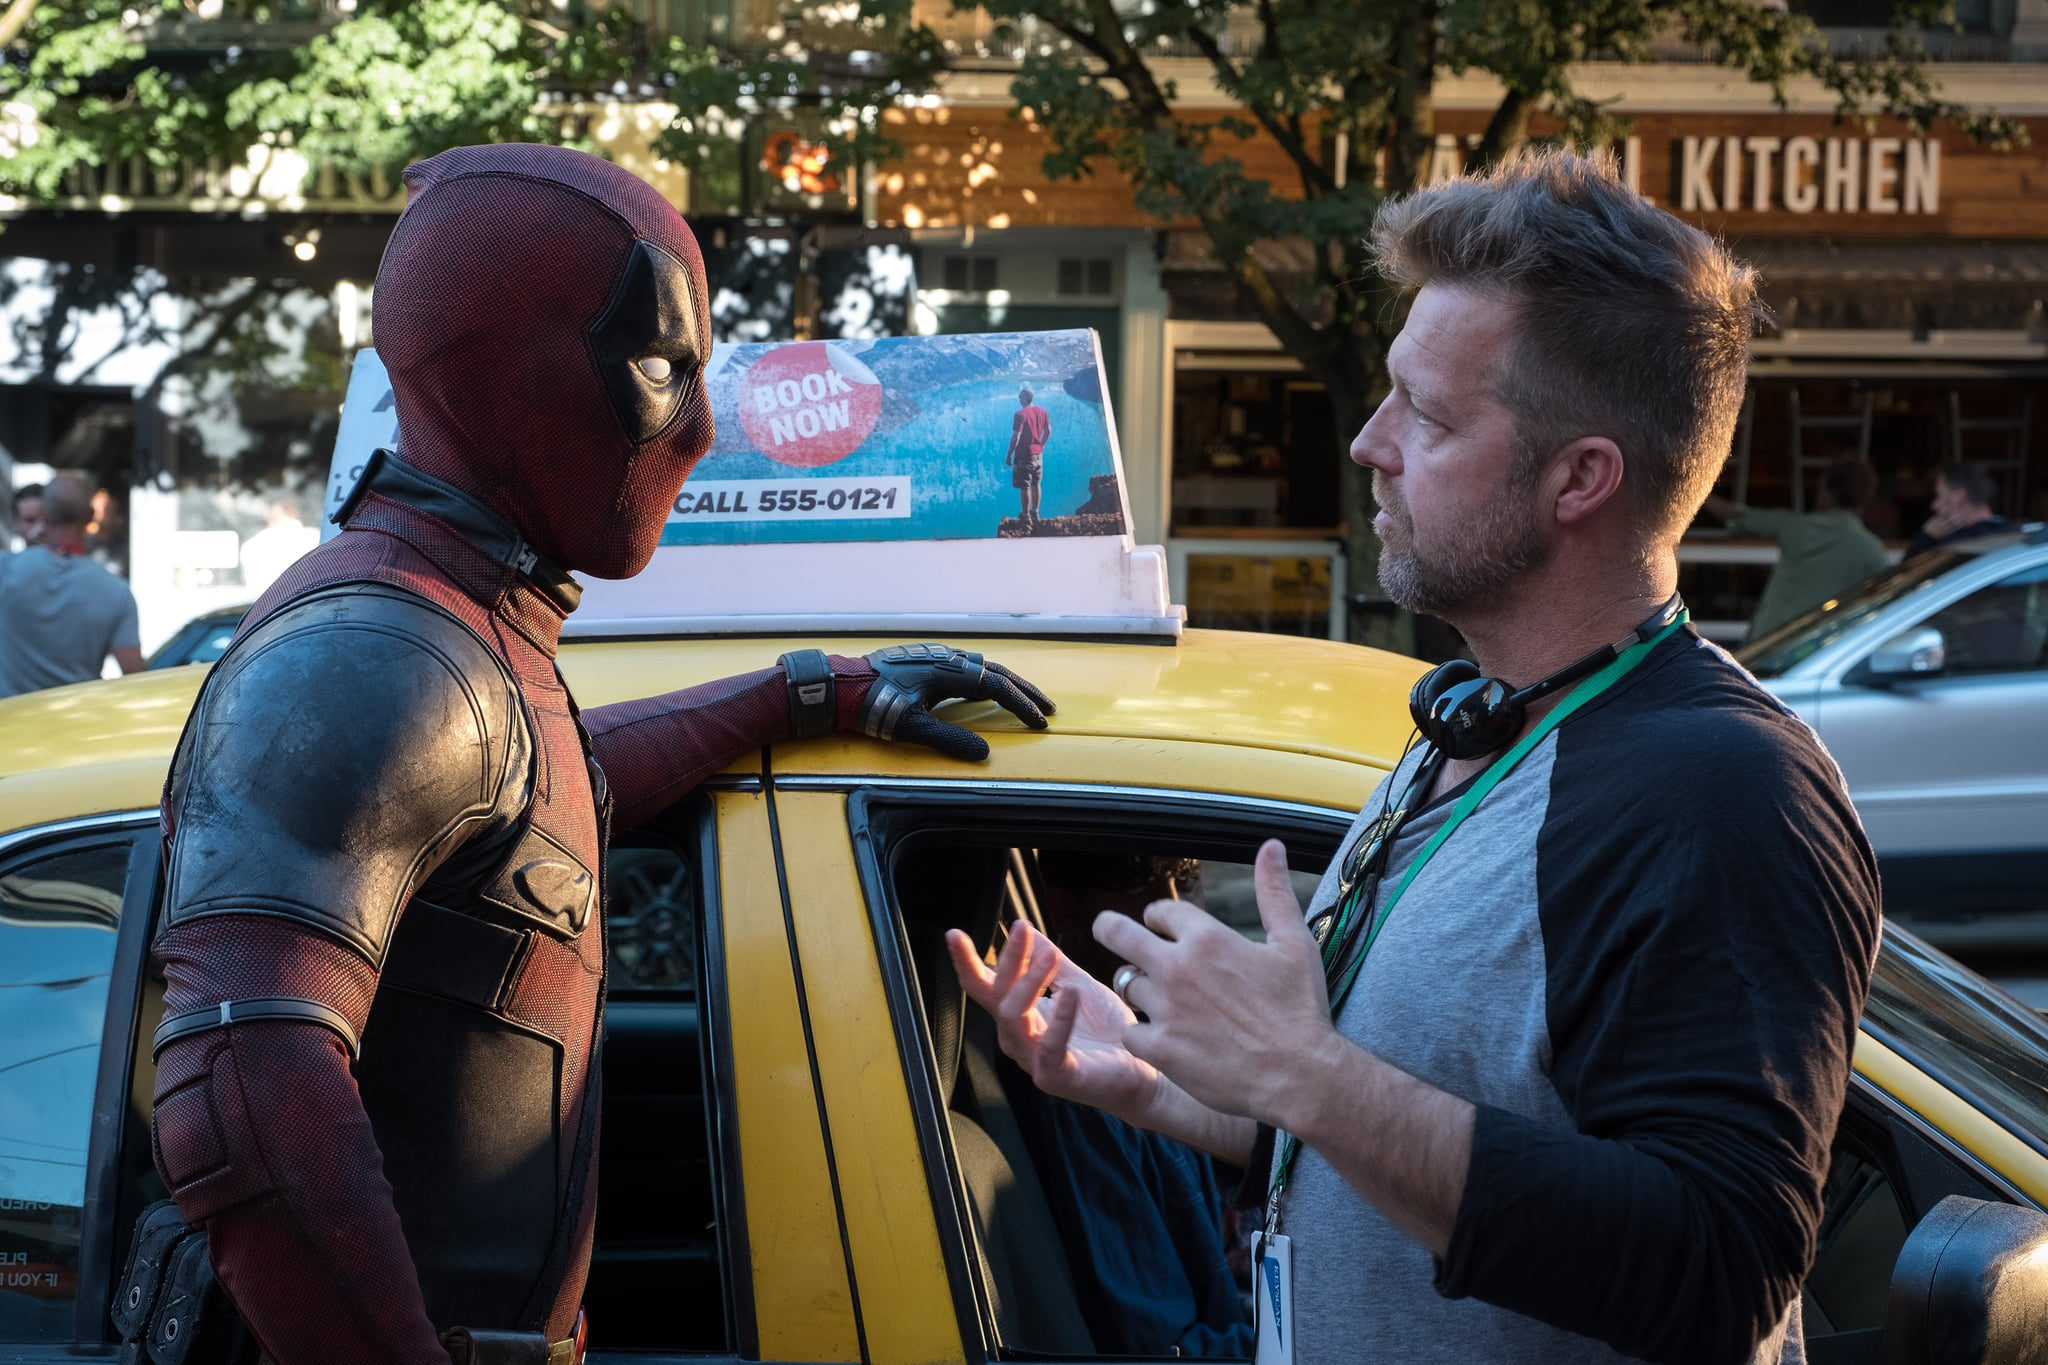 DF-02178 – Ryan Reynolds (Deadpool) and Director David Leitch on the set of Twentieth Century Fox's DEADPOOL 2. Photo Credit: Joe Lederer.